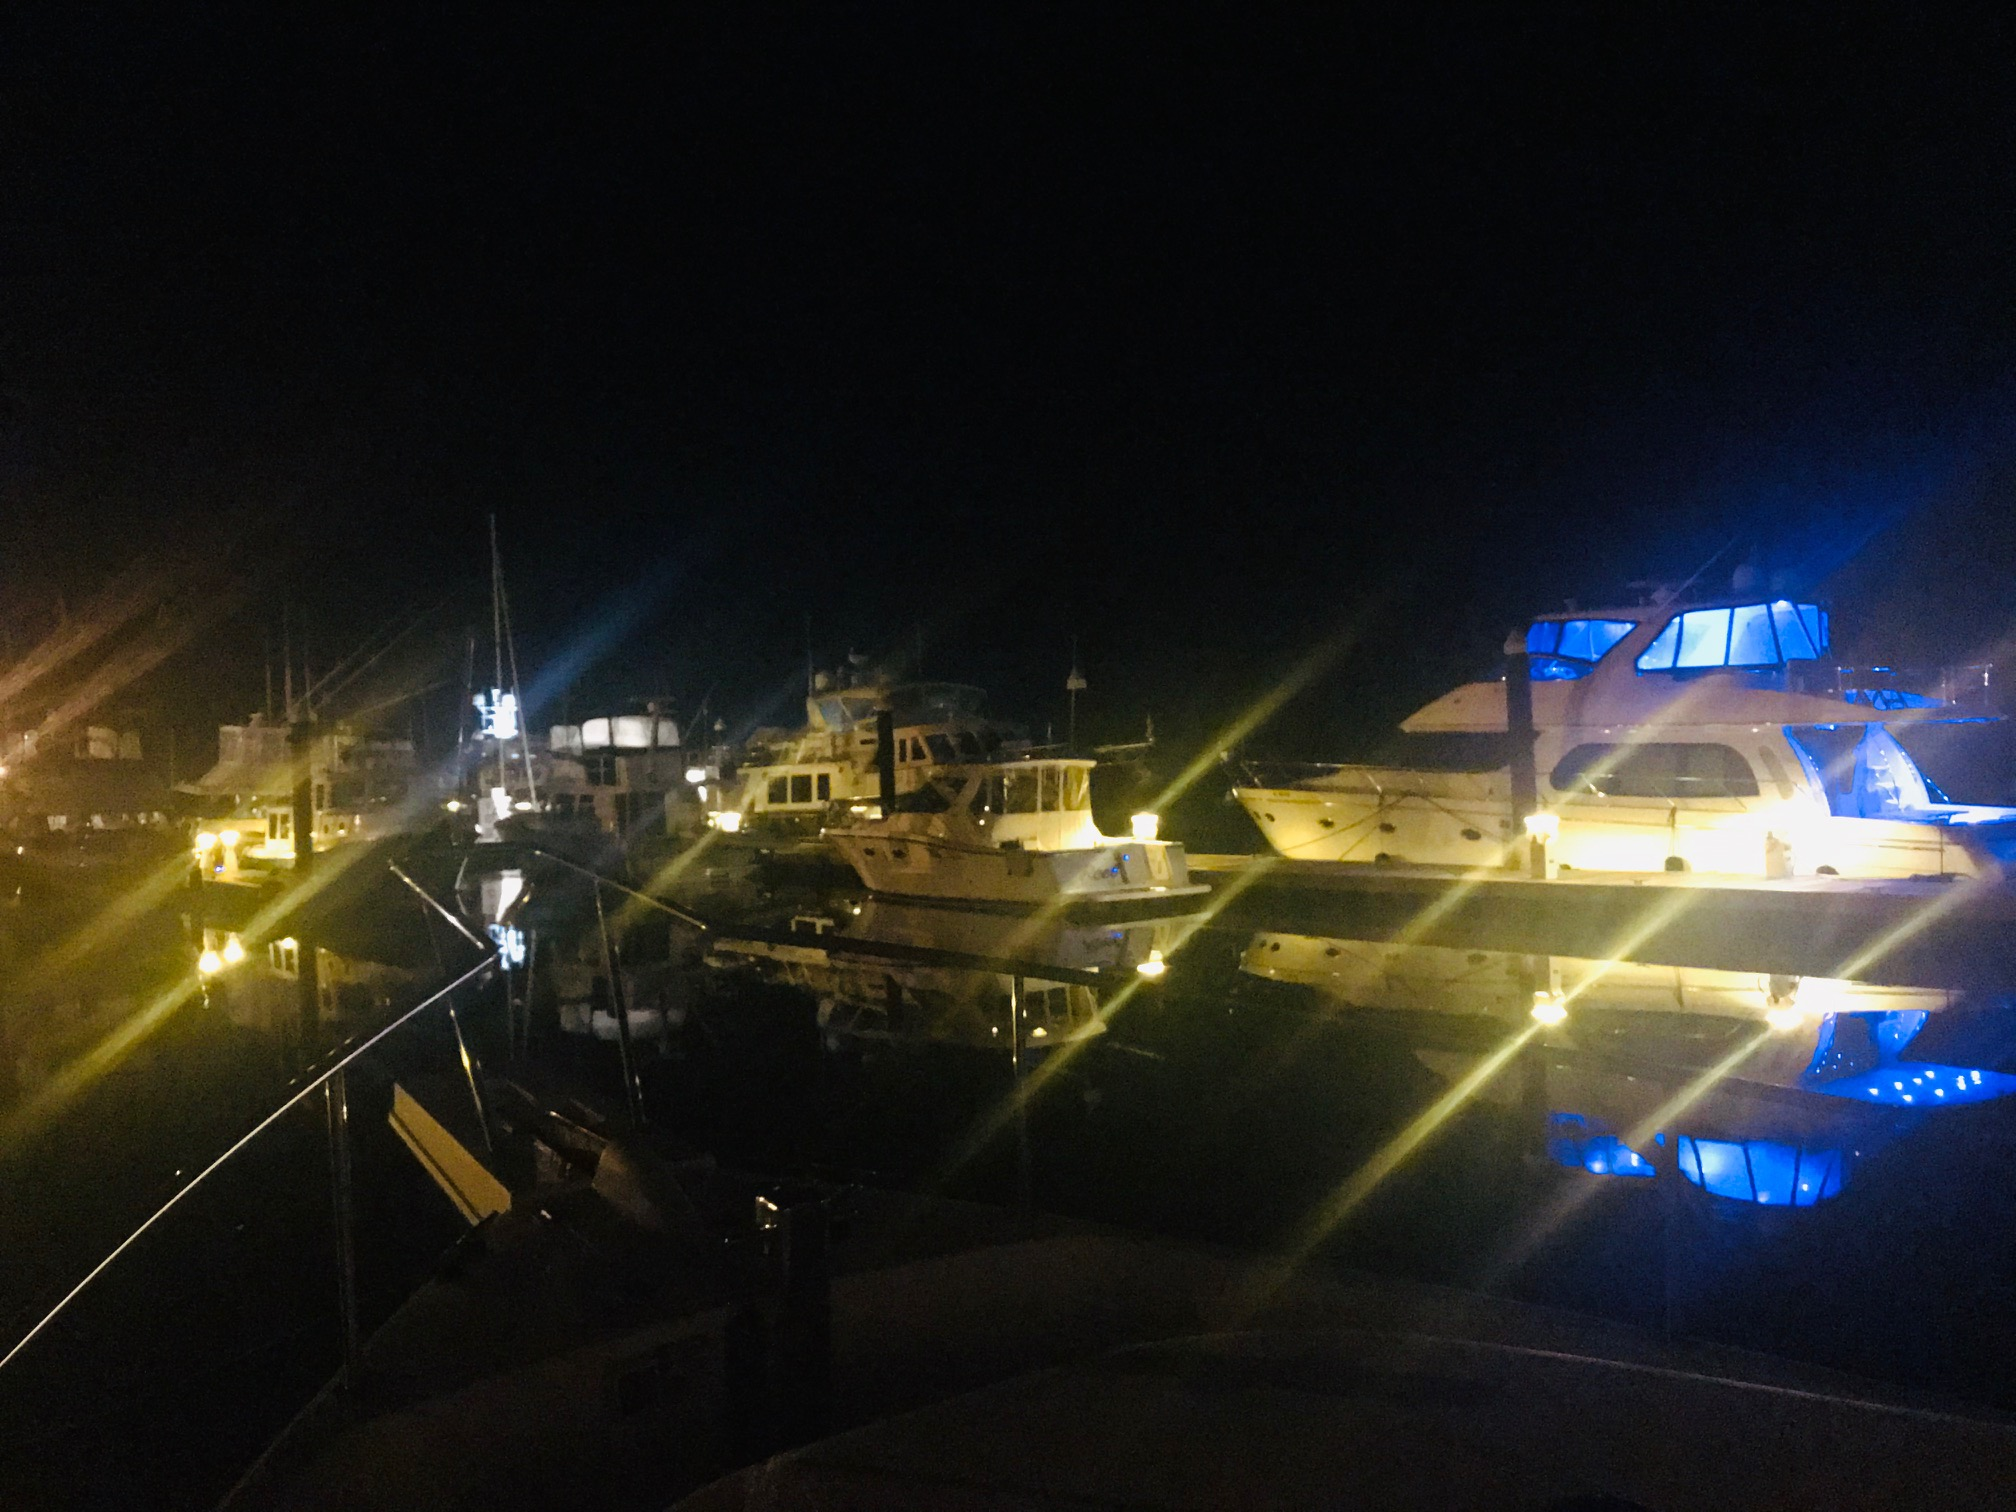 Nighttime at Harborwalk Marina